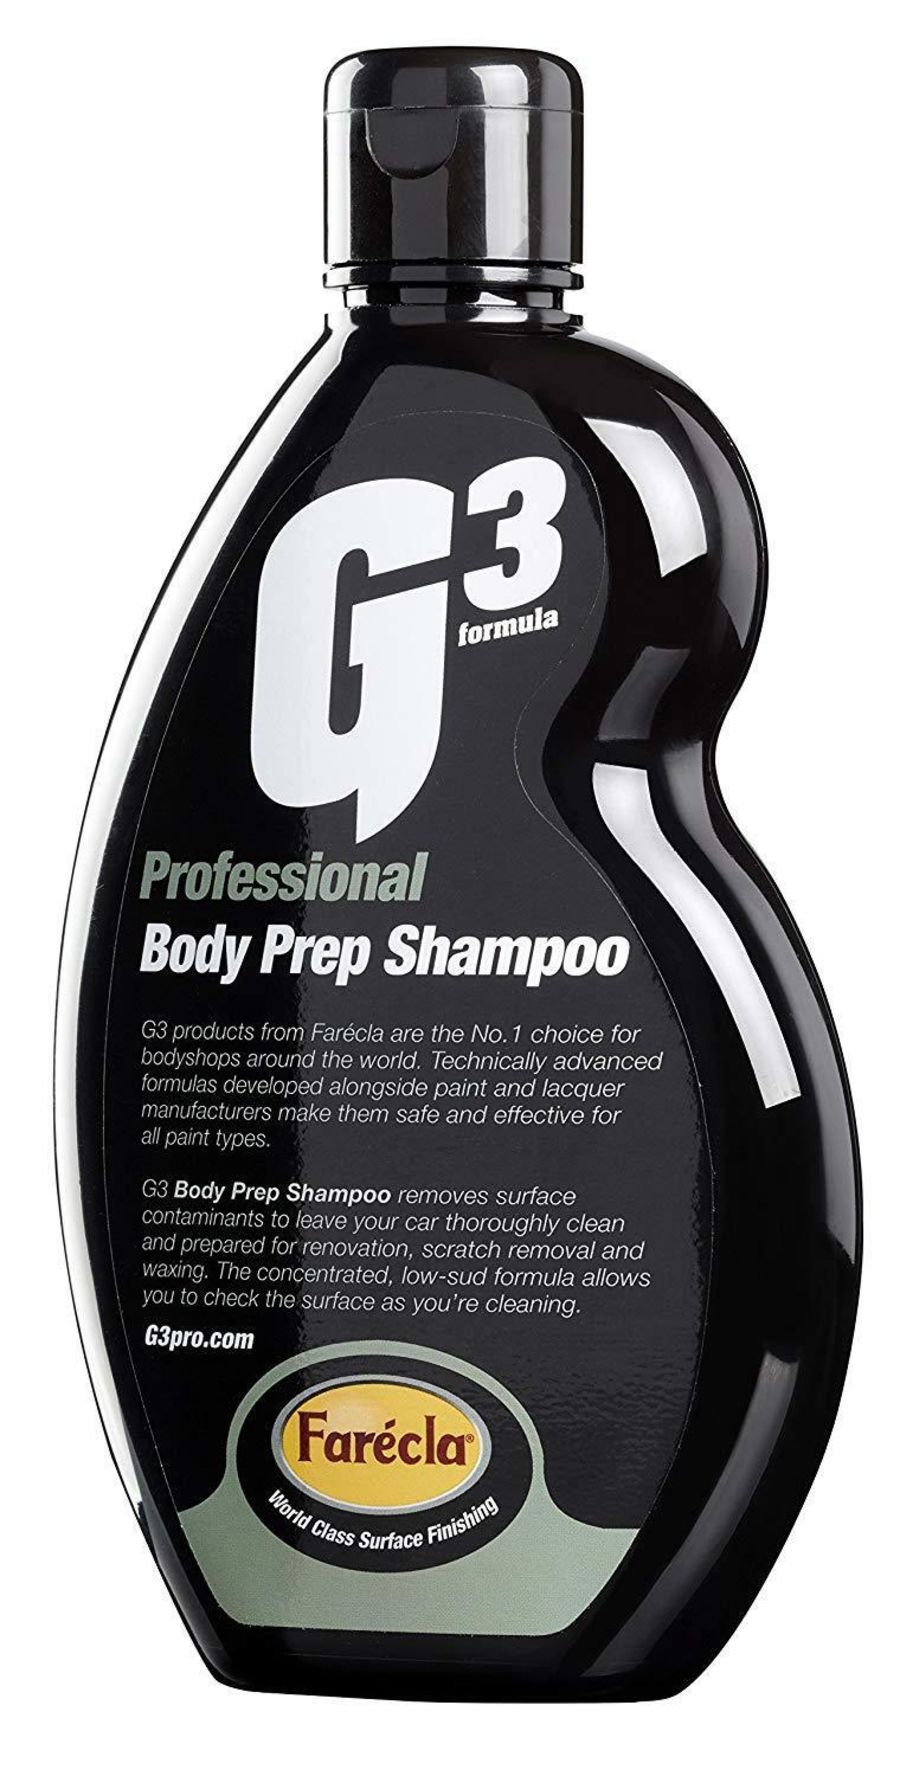 G3 Professional Body prep Shampoo 500ml